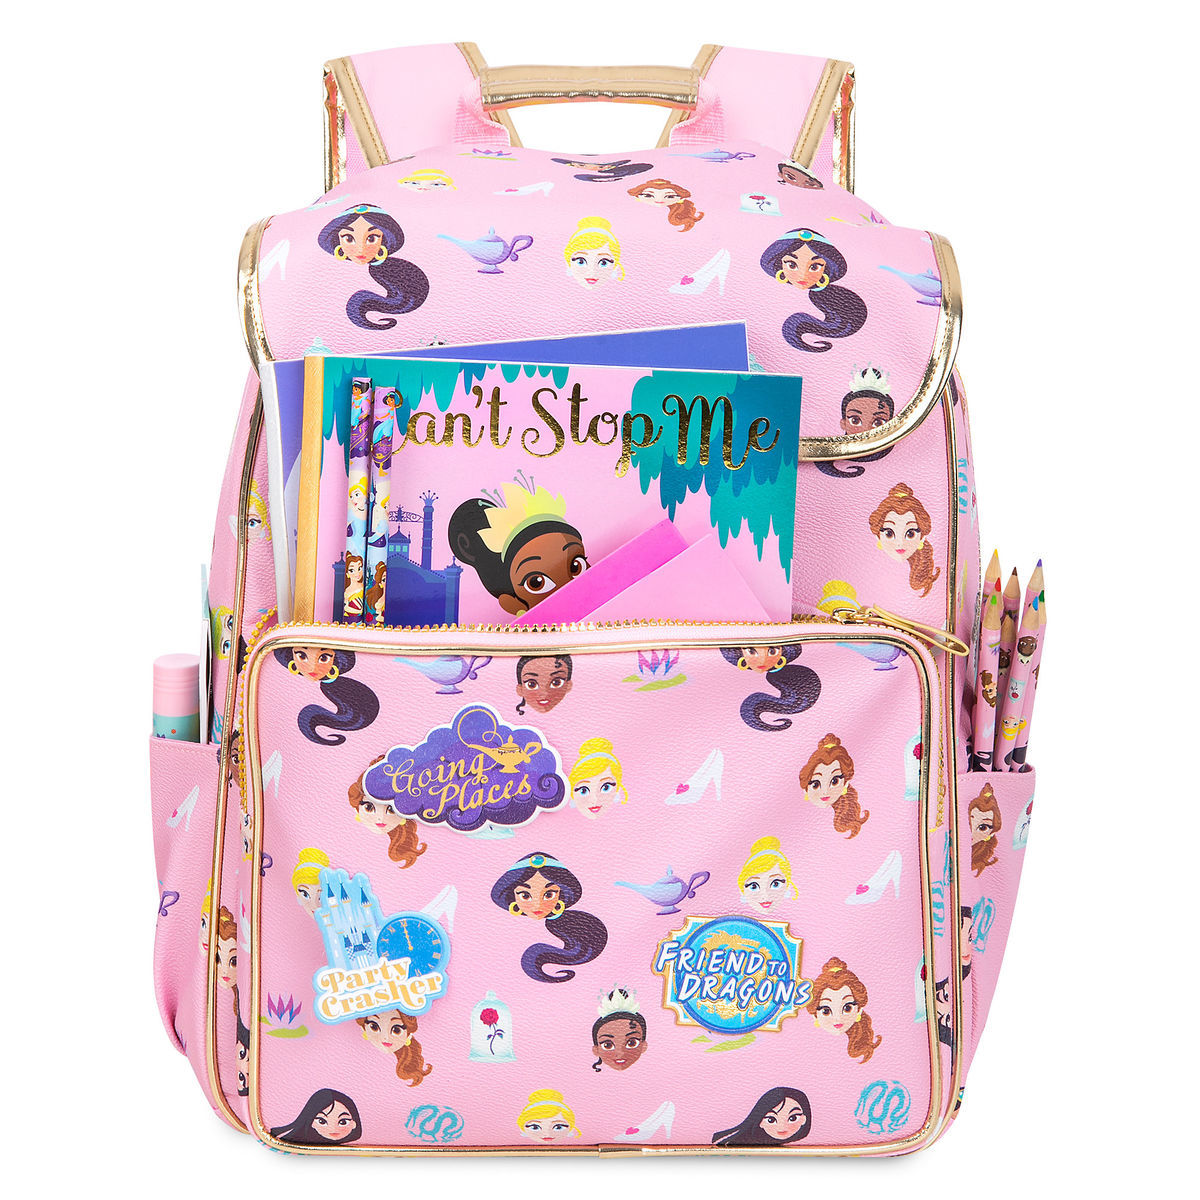 Product Image of Disney Princess Backpack - Personalizable   4 181fcf65f28ee